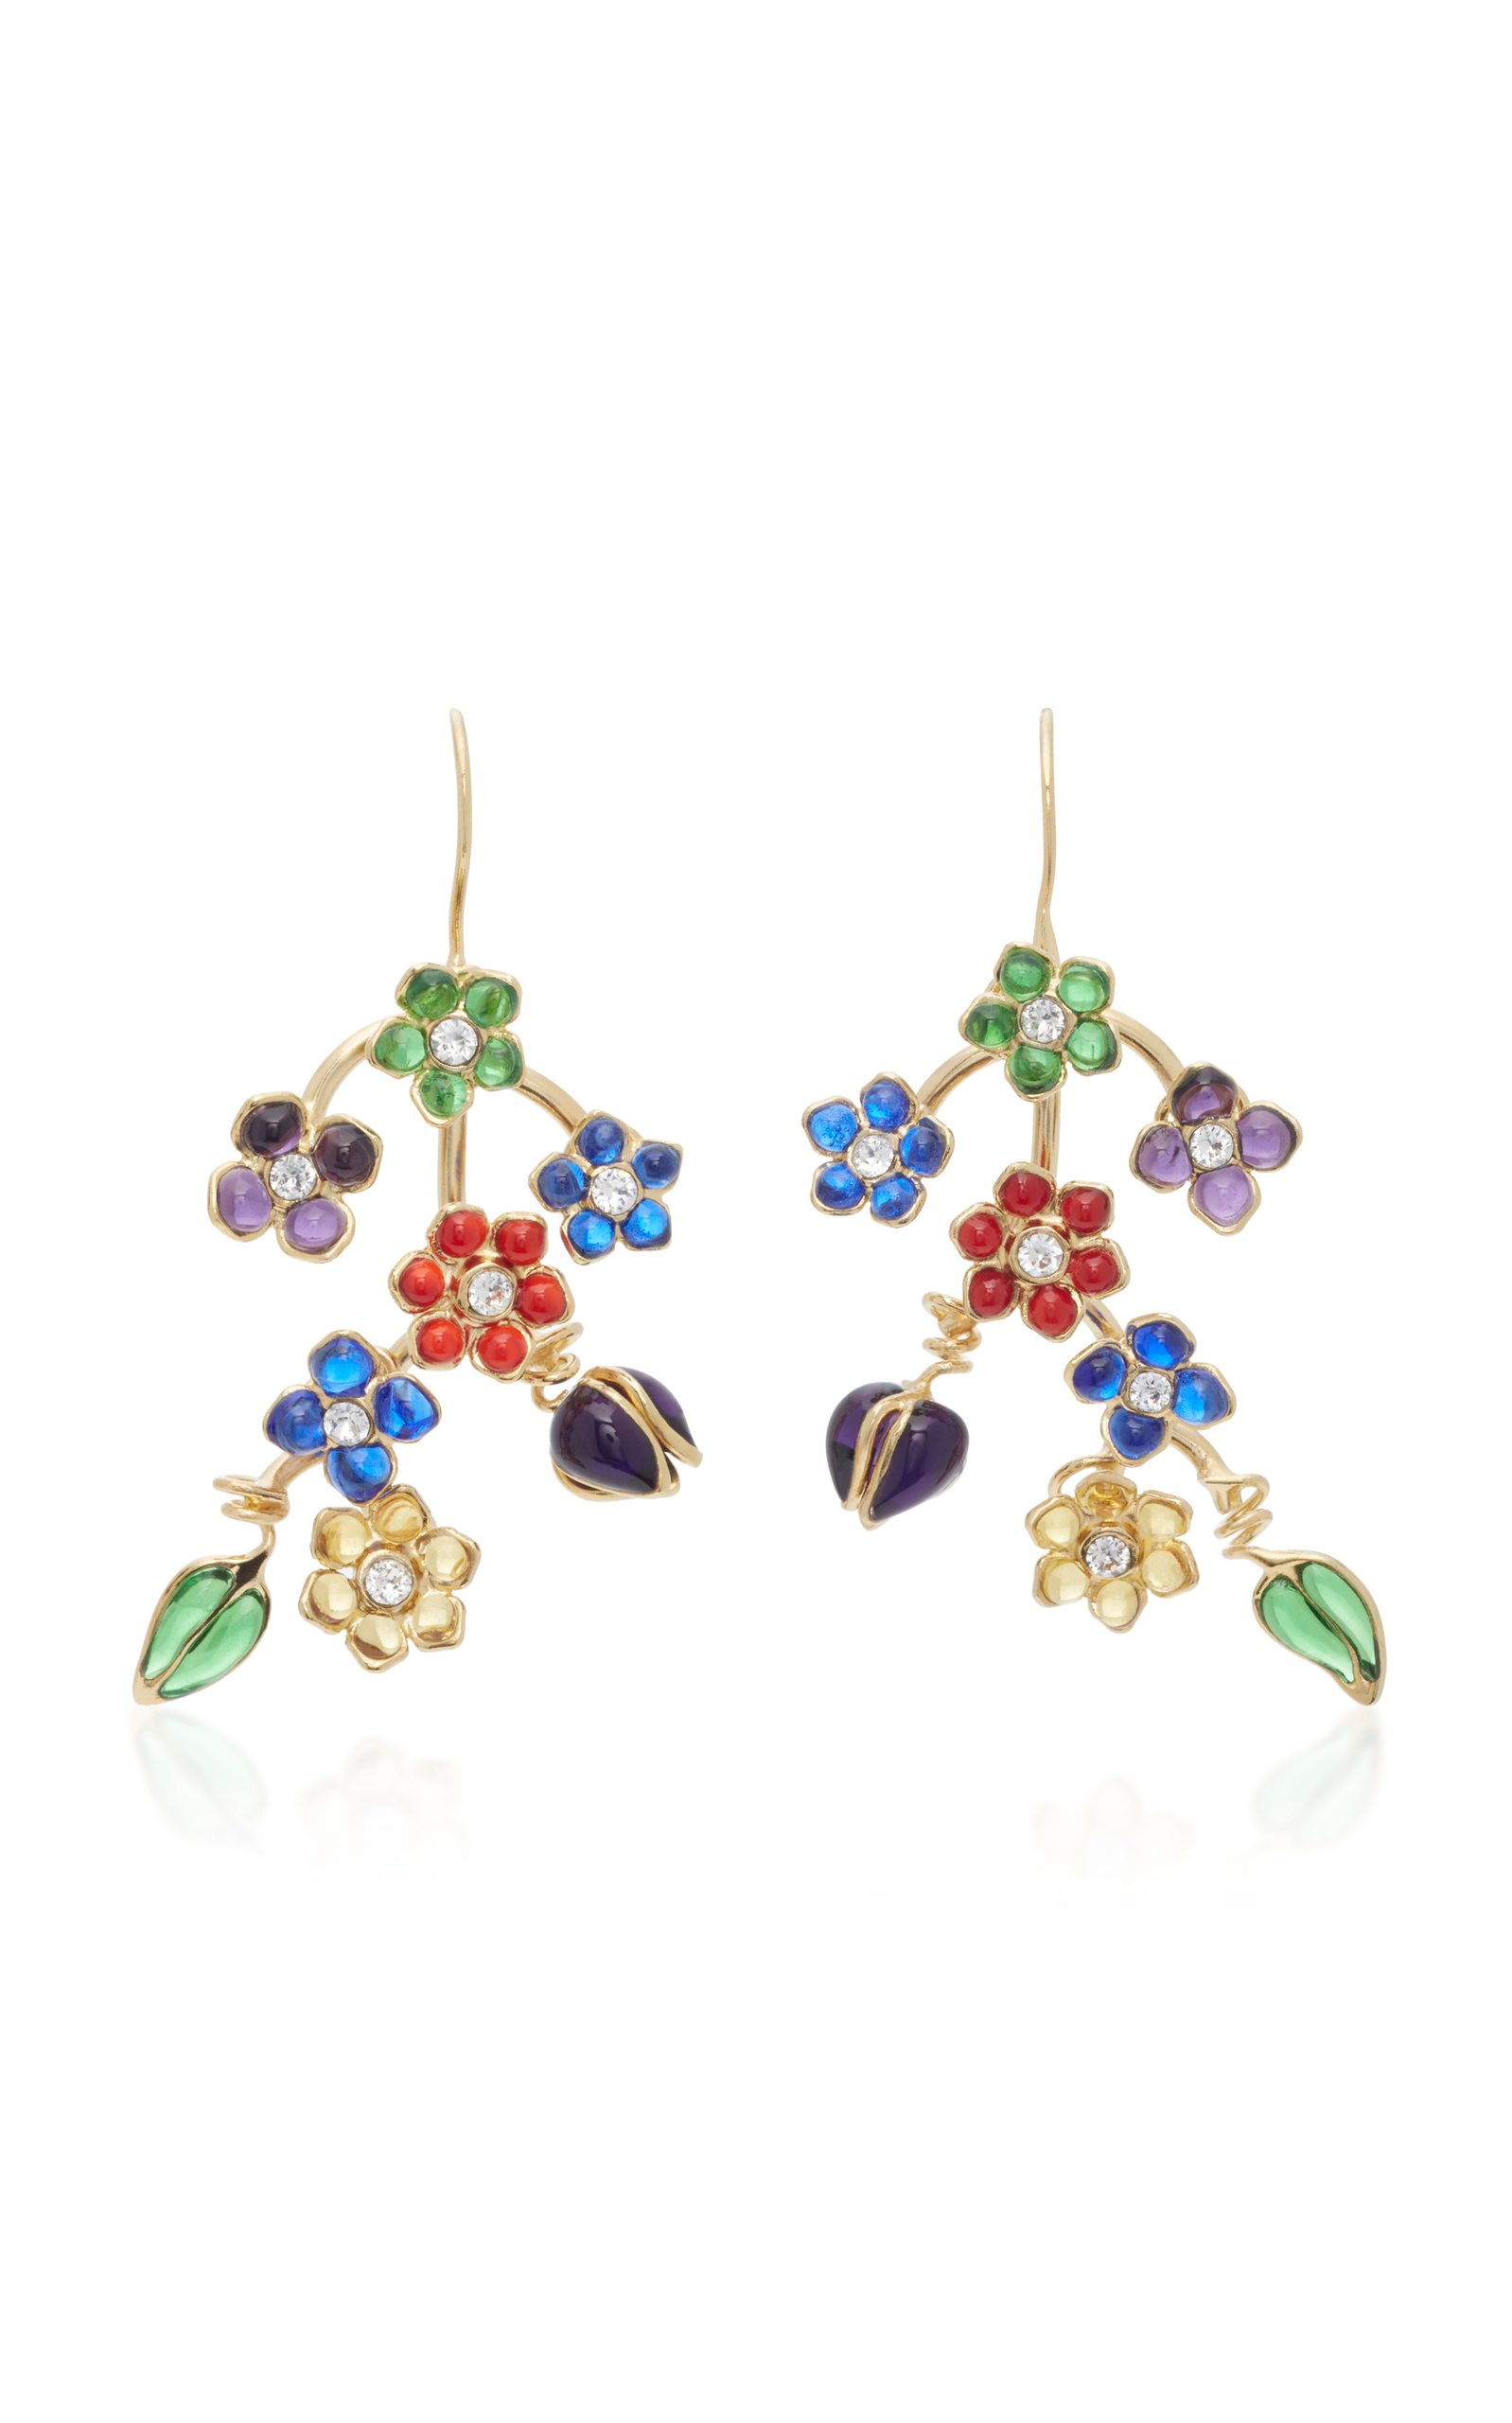 GRIPOIX GLAMOUR PIERCED 24K GOLD-PLATED GLASS AND CRYSTAL DROP EARRINGS